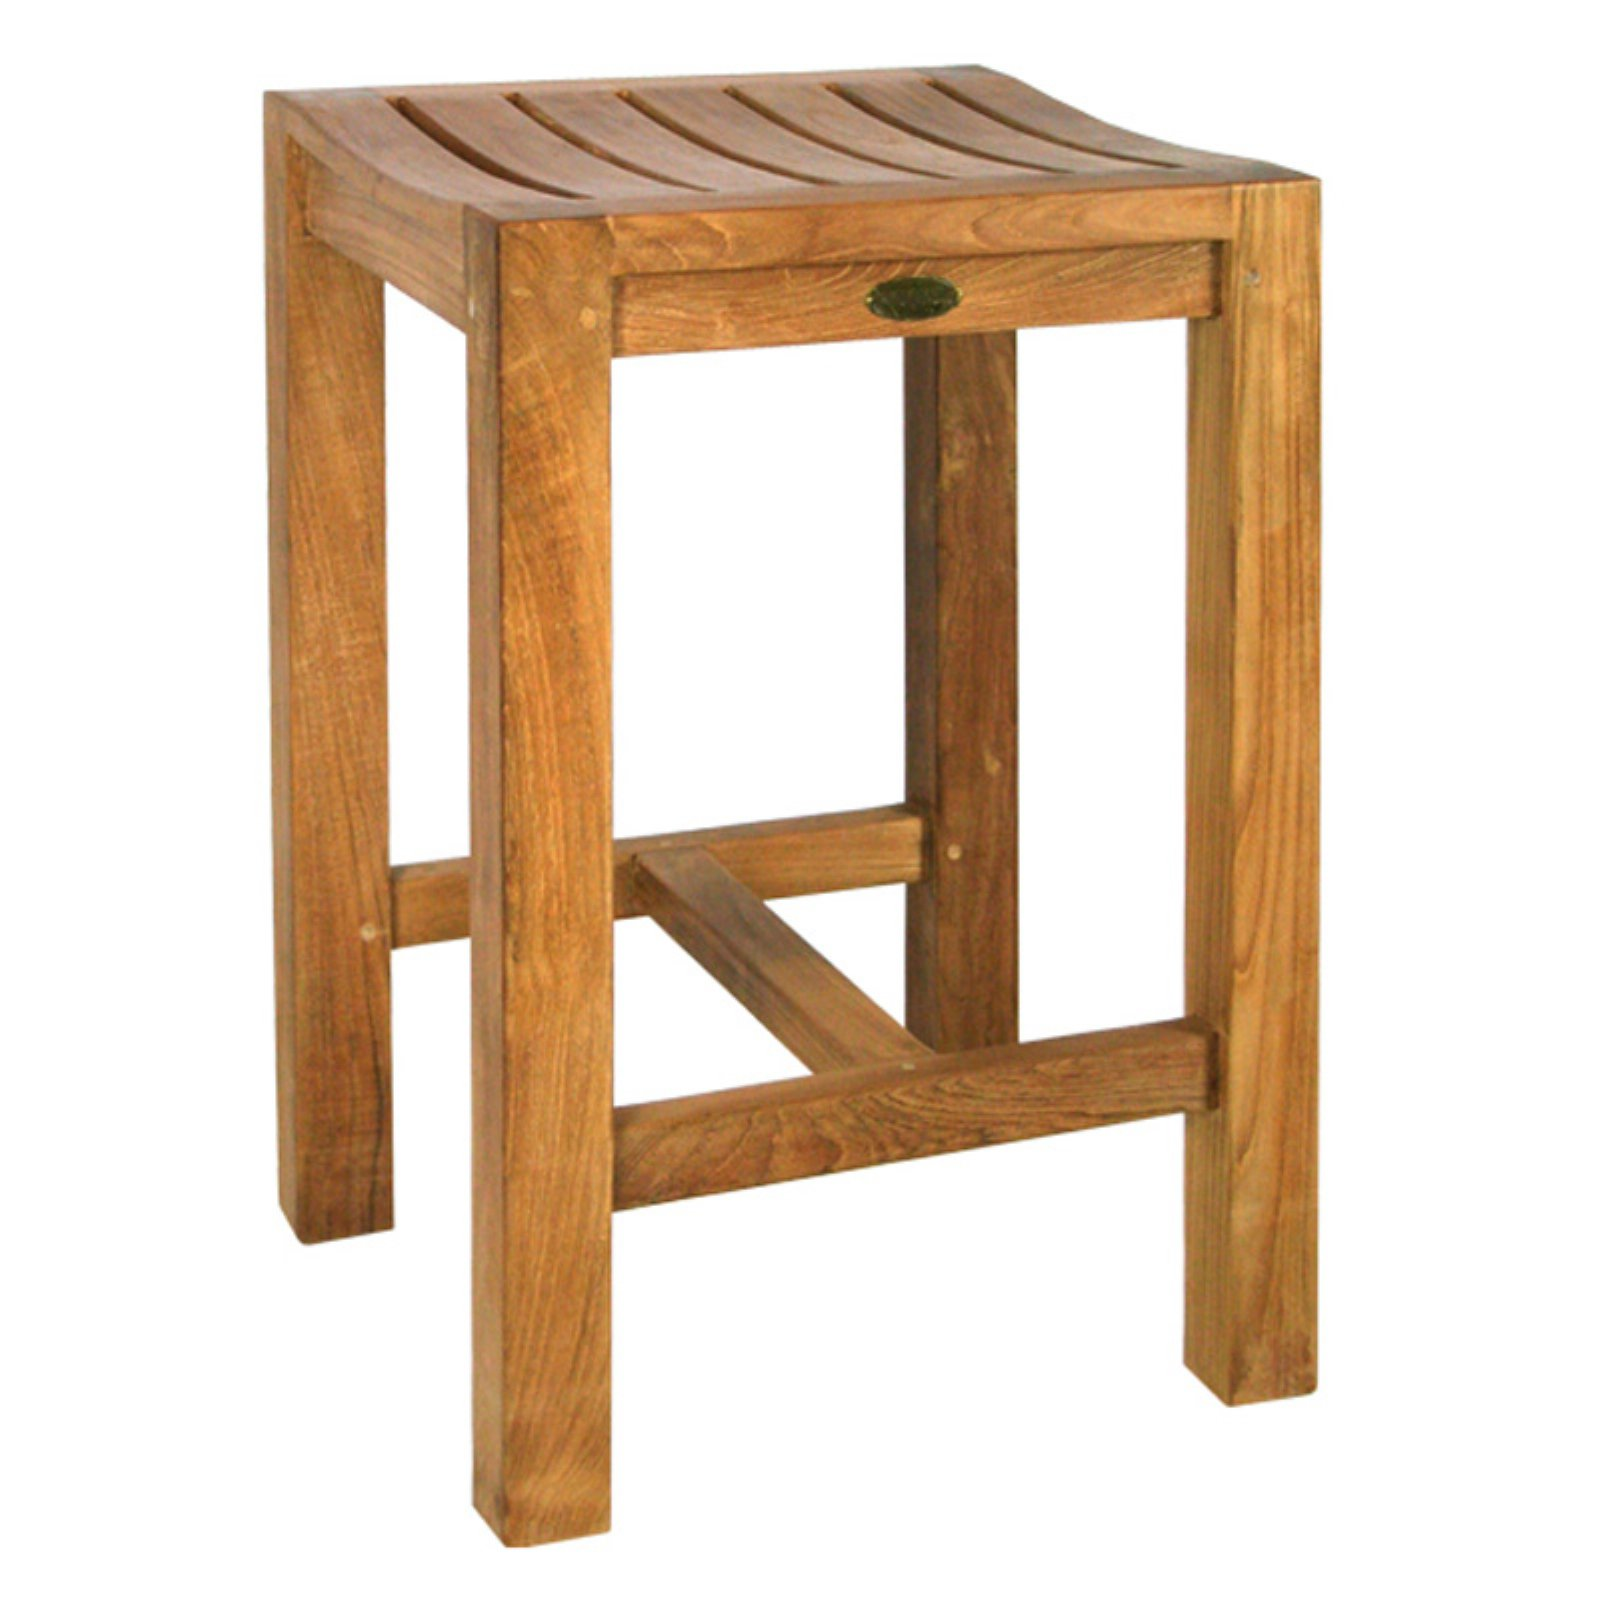 Chic Teak Santa Monica Teak Outdoor Counter Stool